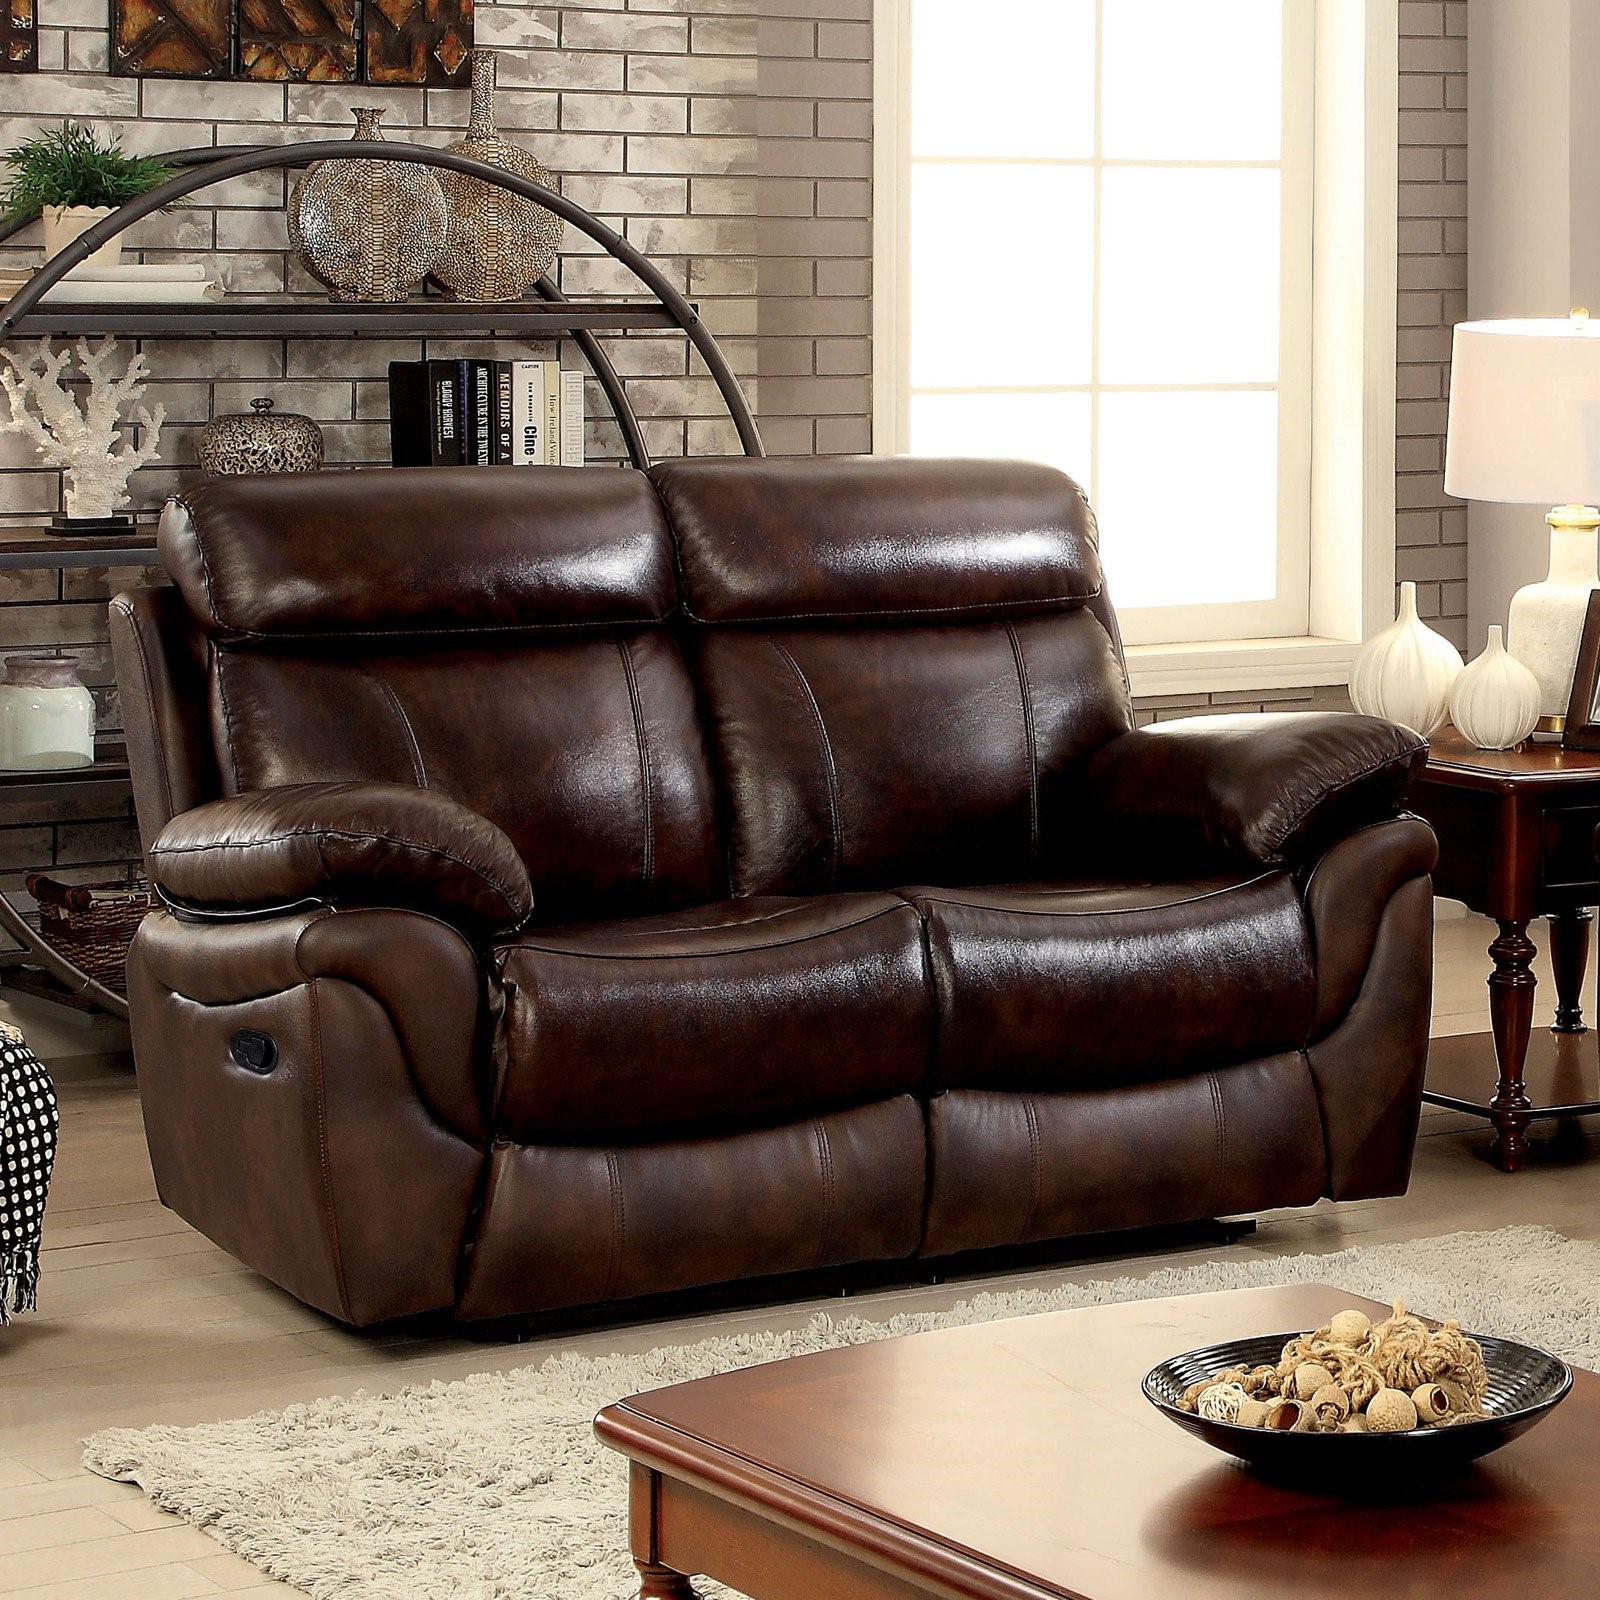 Furniture of America Benson Transitional Style Leatherette Recliner Loveseat